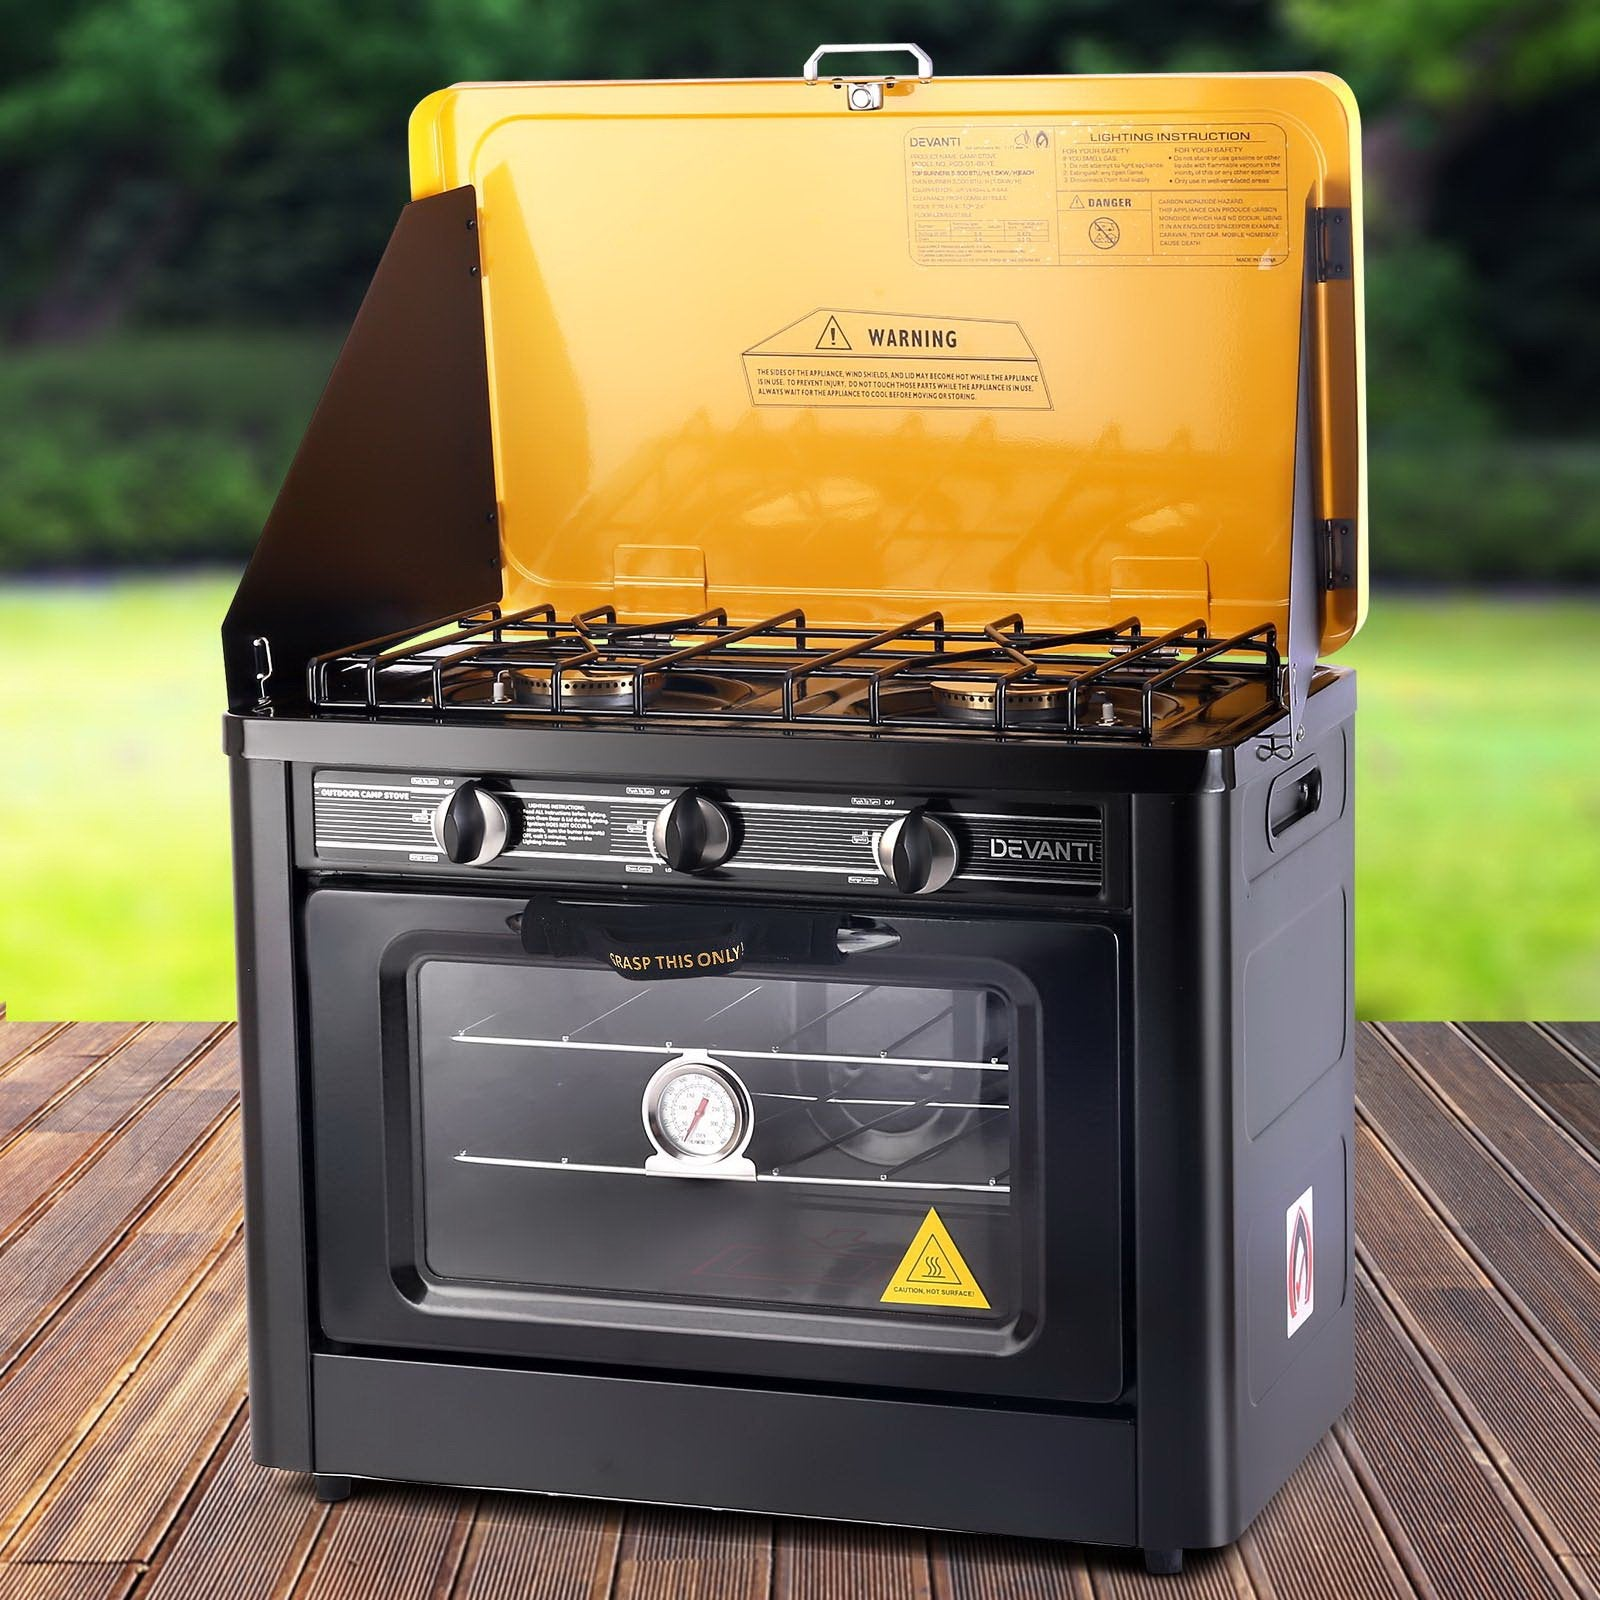 Devanti 3 Burner Portable Oven - Black & Yellow - Aussie Camping Store